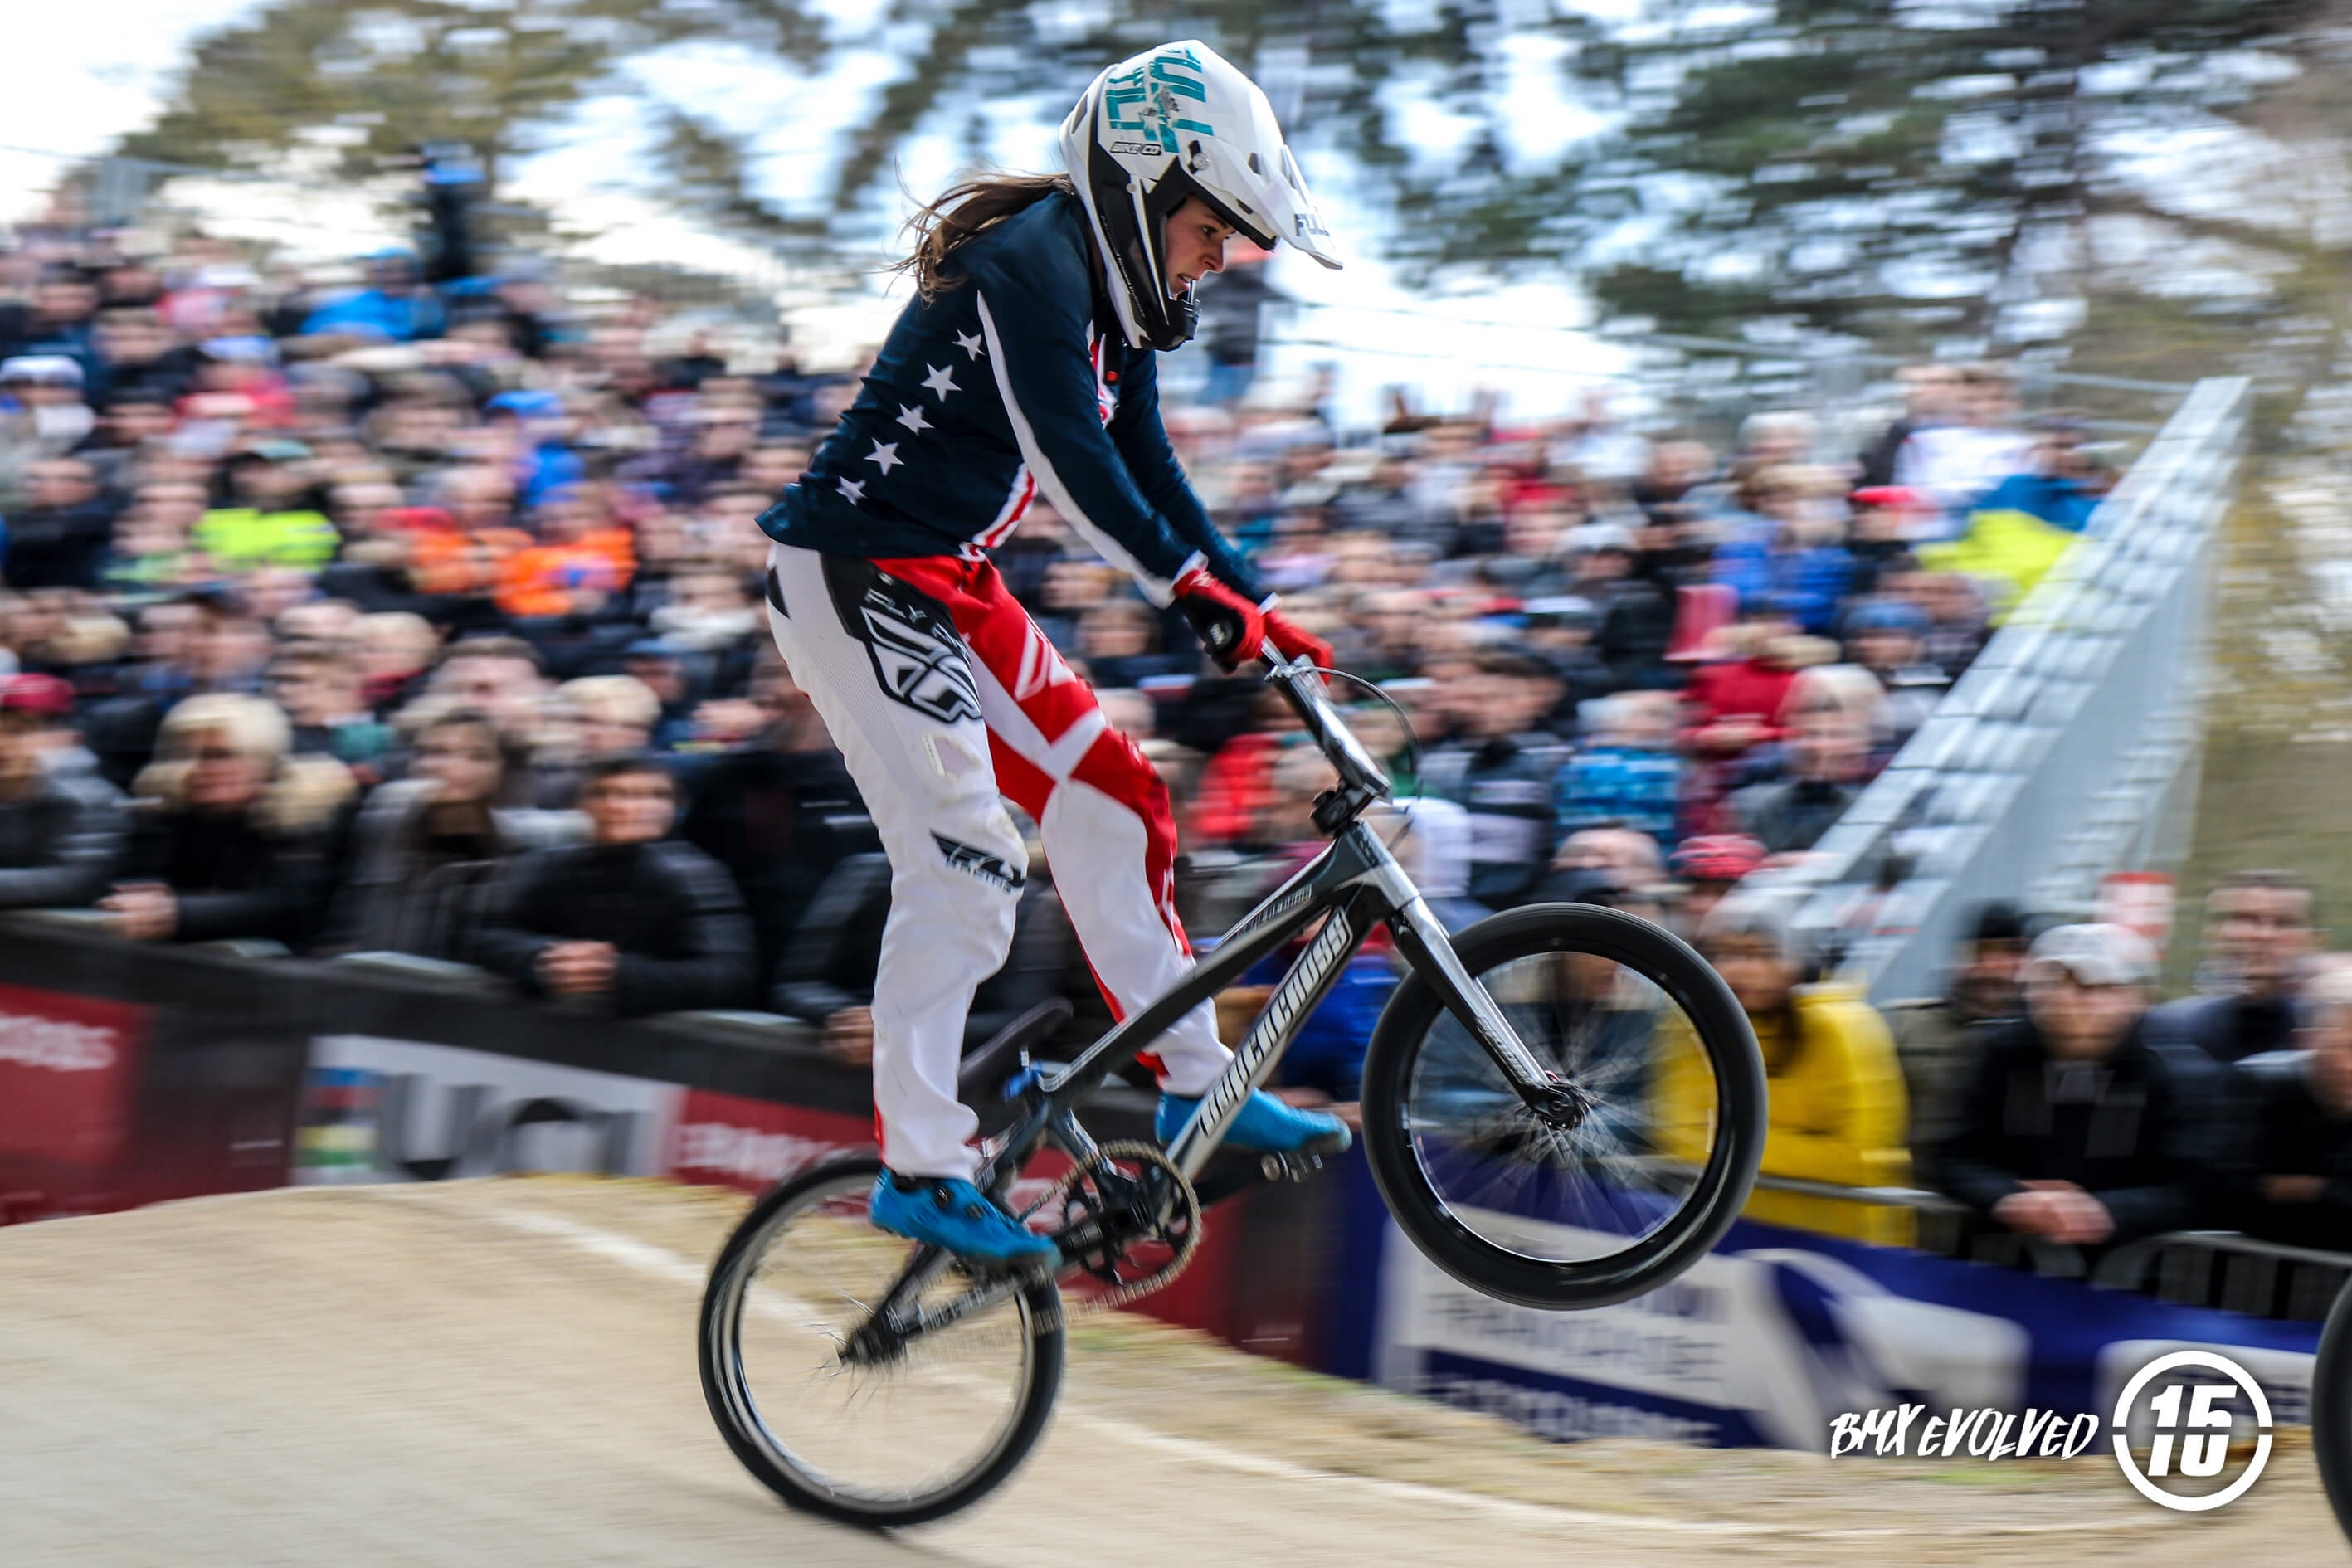 UCI SX Paris R2 2018 - Fifteen BMX